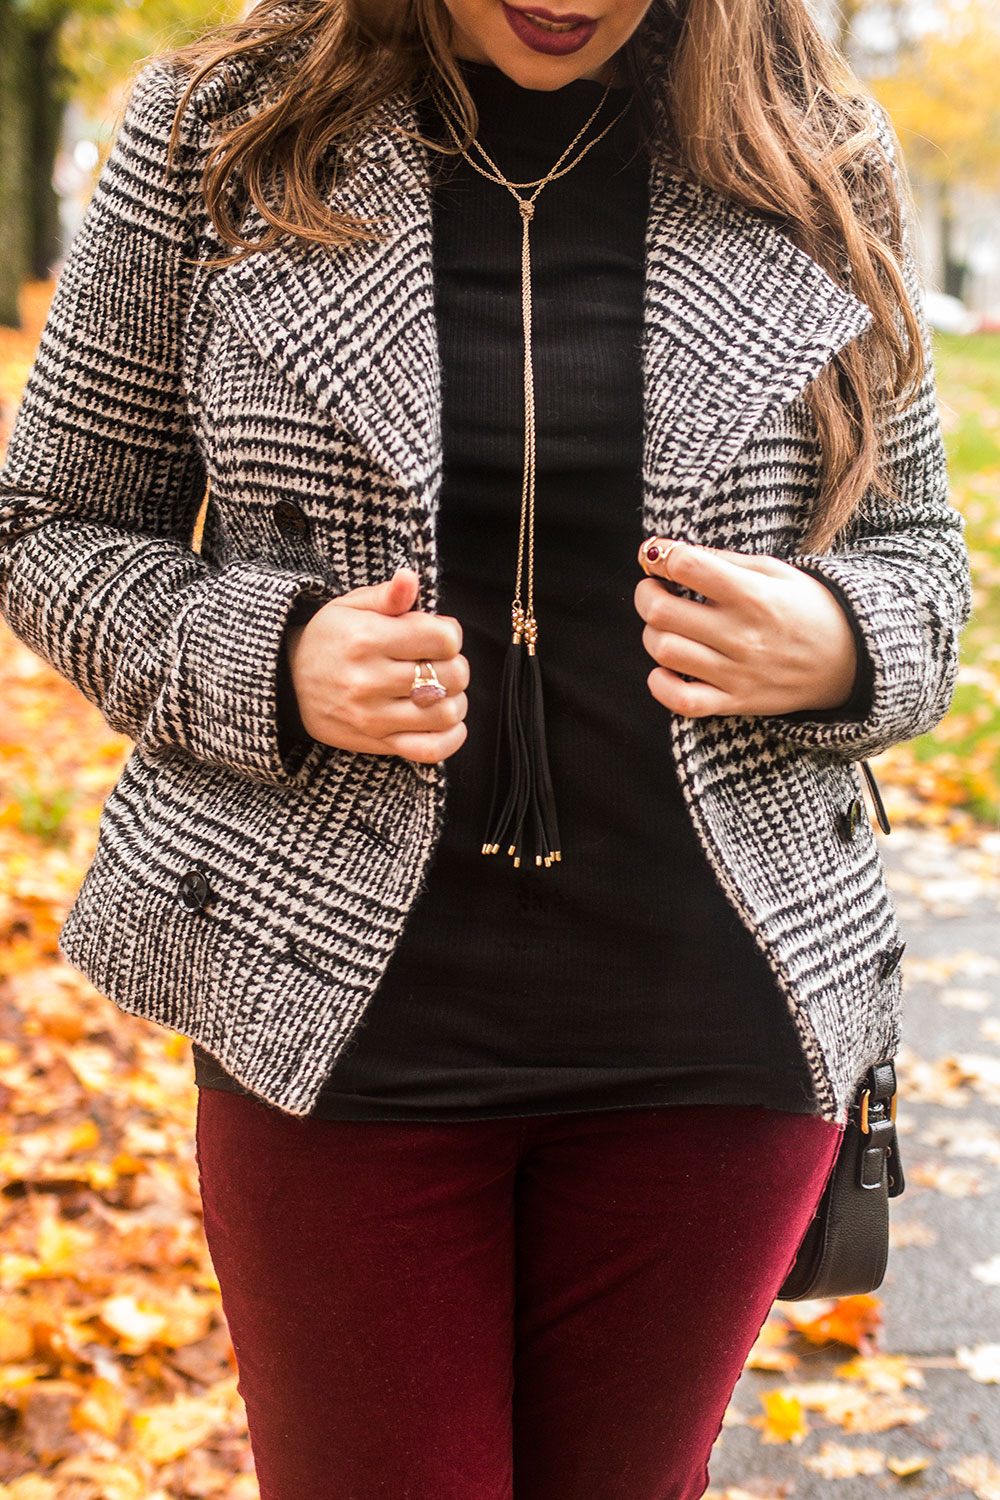 Fall Outfit Ideas For the Weekend // Hello Rigby Seattle Fashion Blog